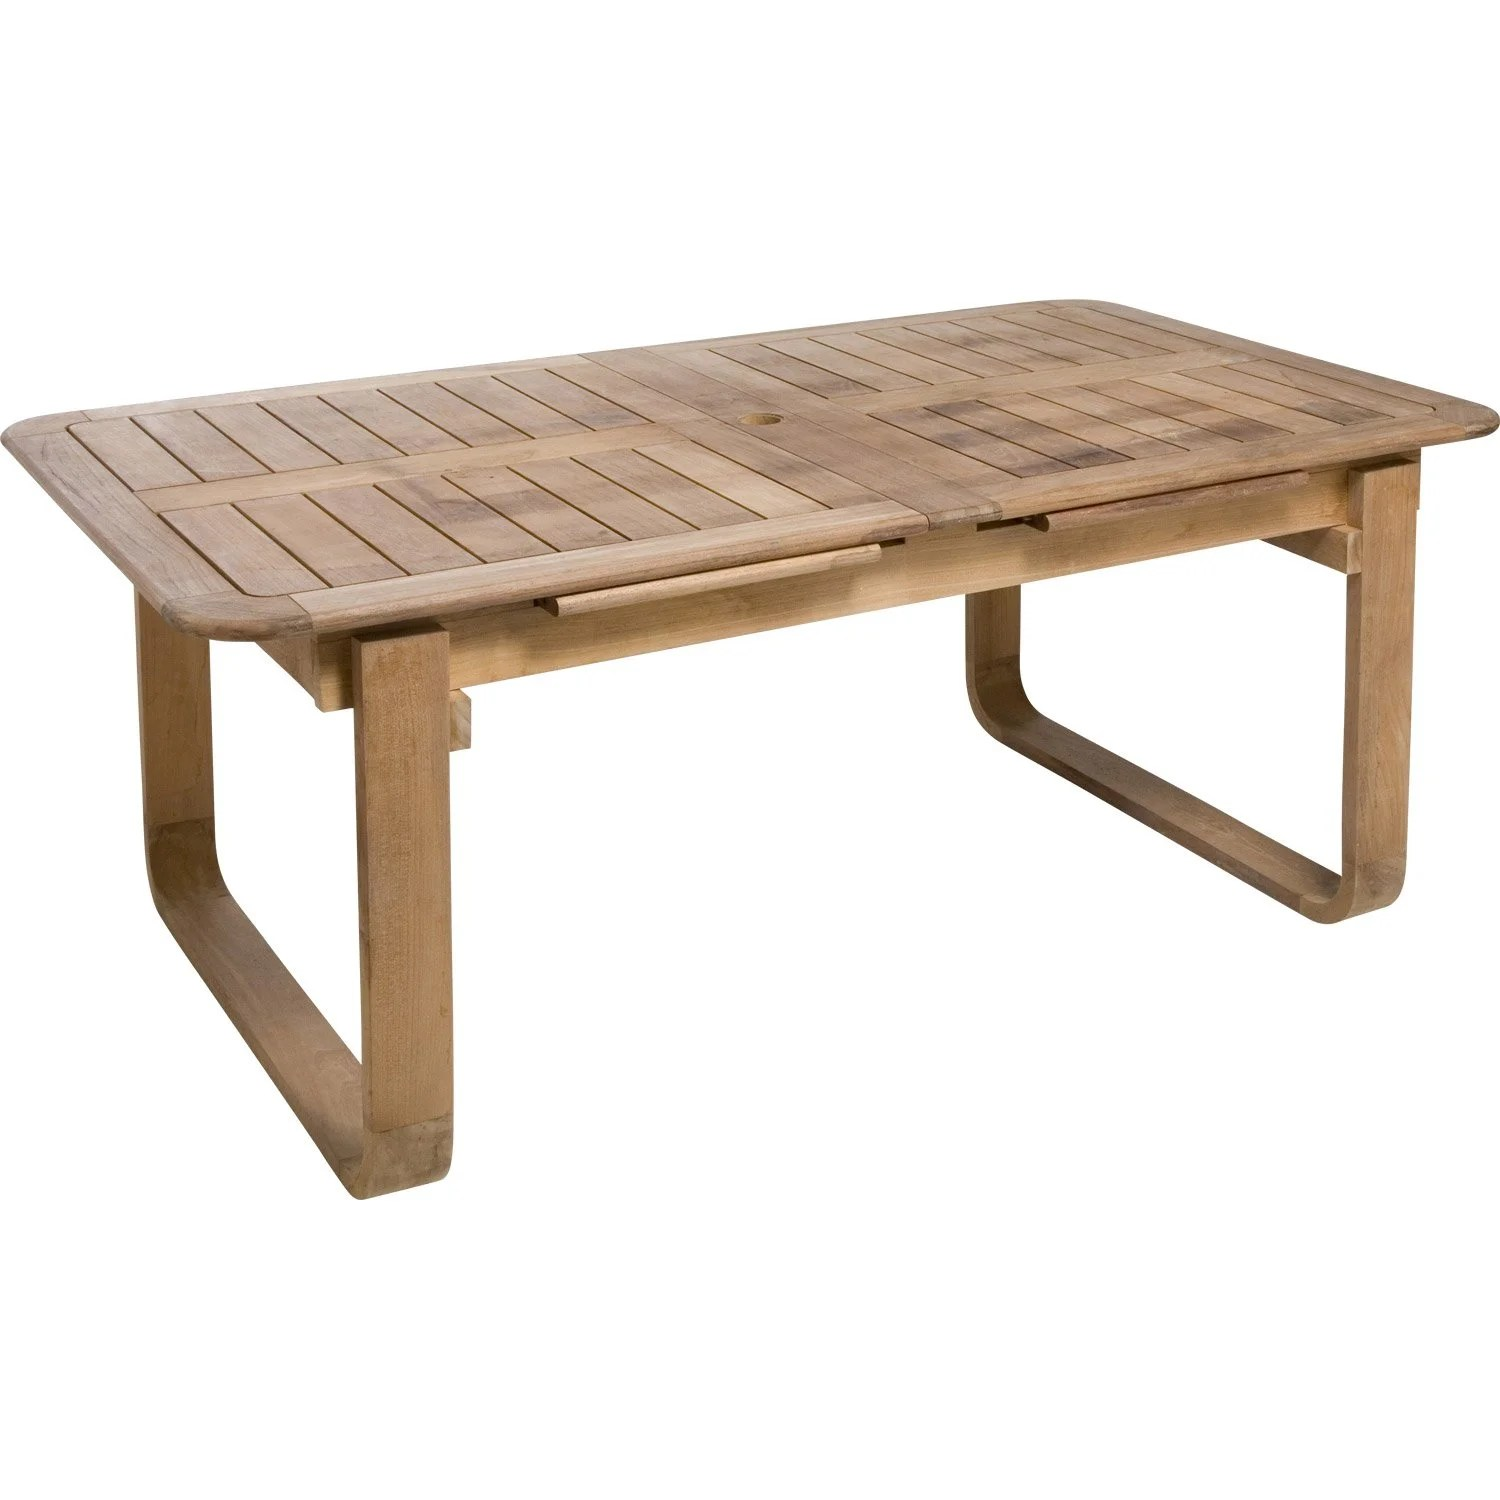 Table Bois 6 Personnes Table De Jardin Naterial Resort Rectangulaire Naturel 6 8